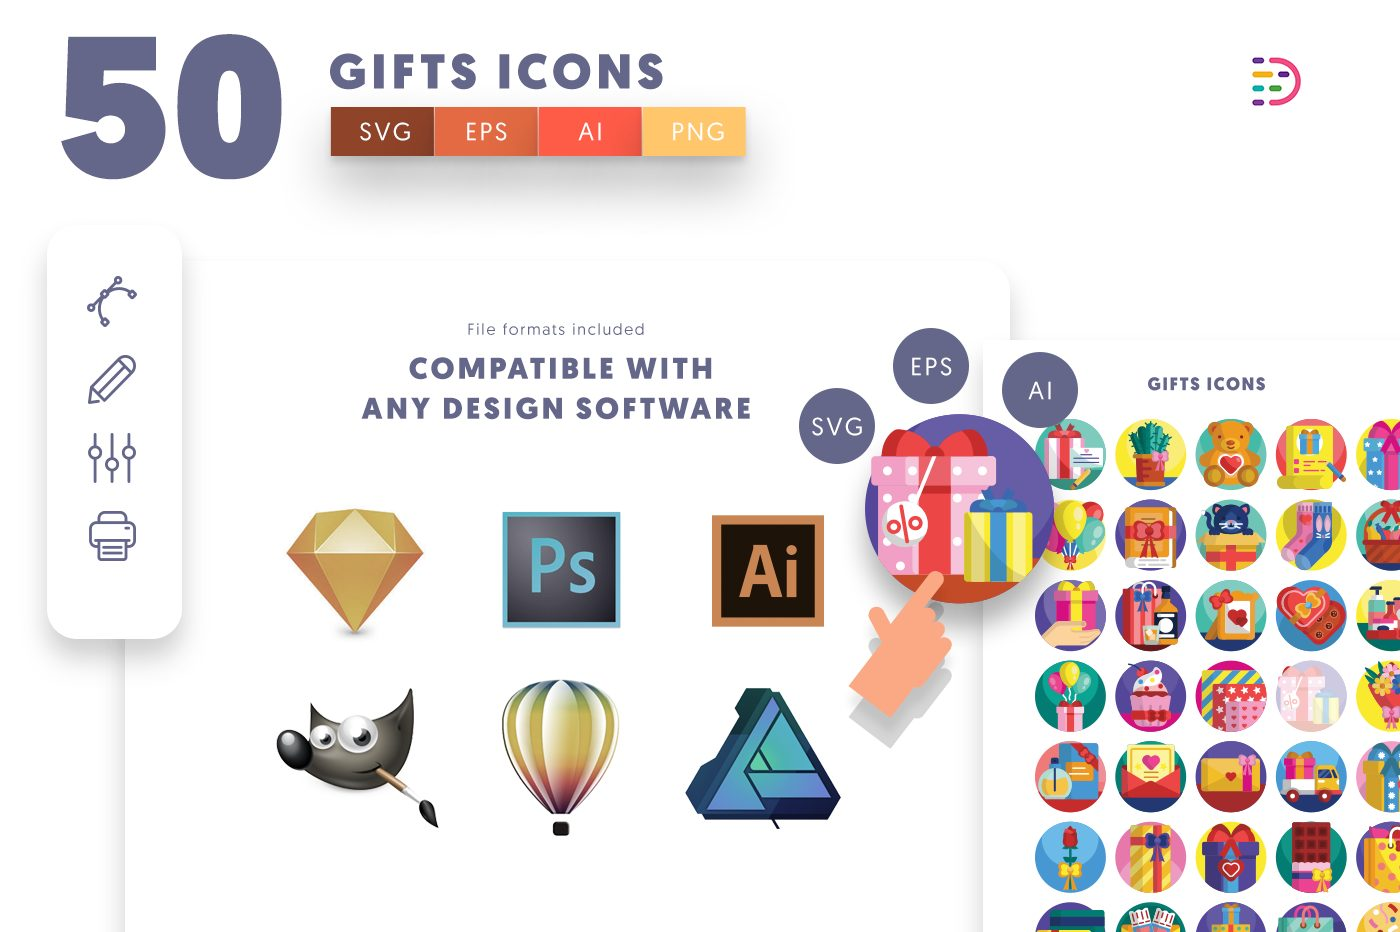 full vector 50 Gifts Icons EPS, SVG, PNG